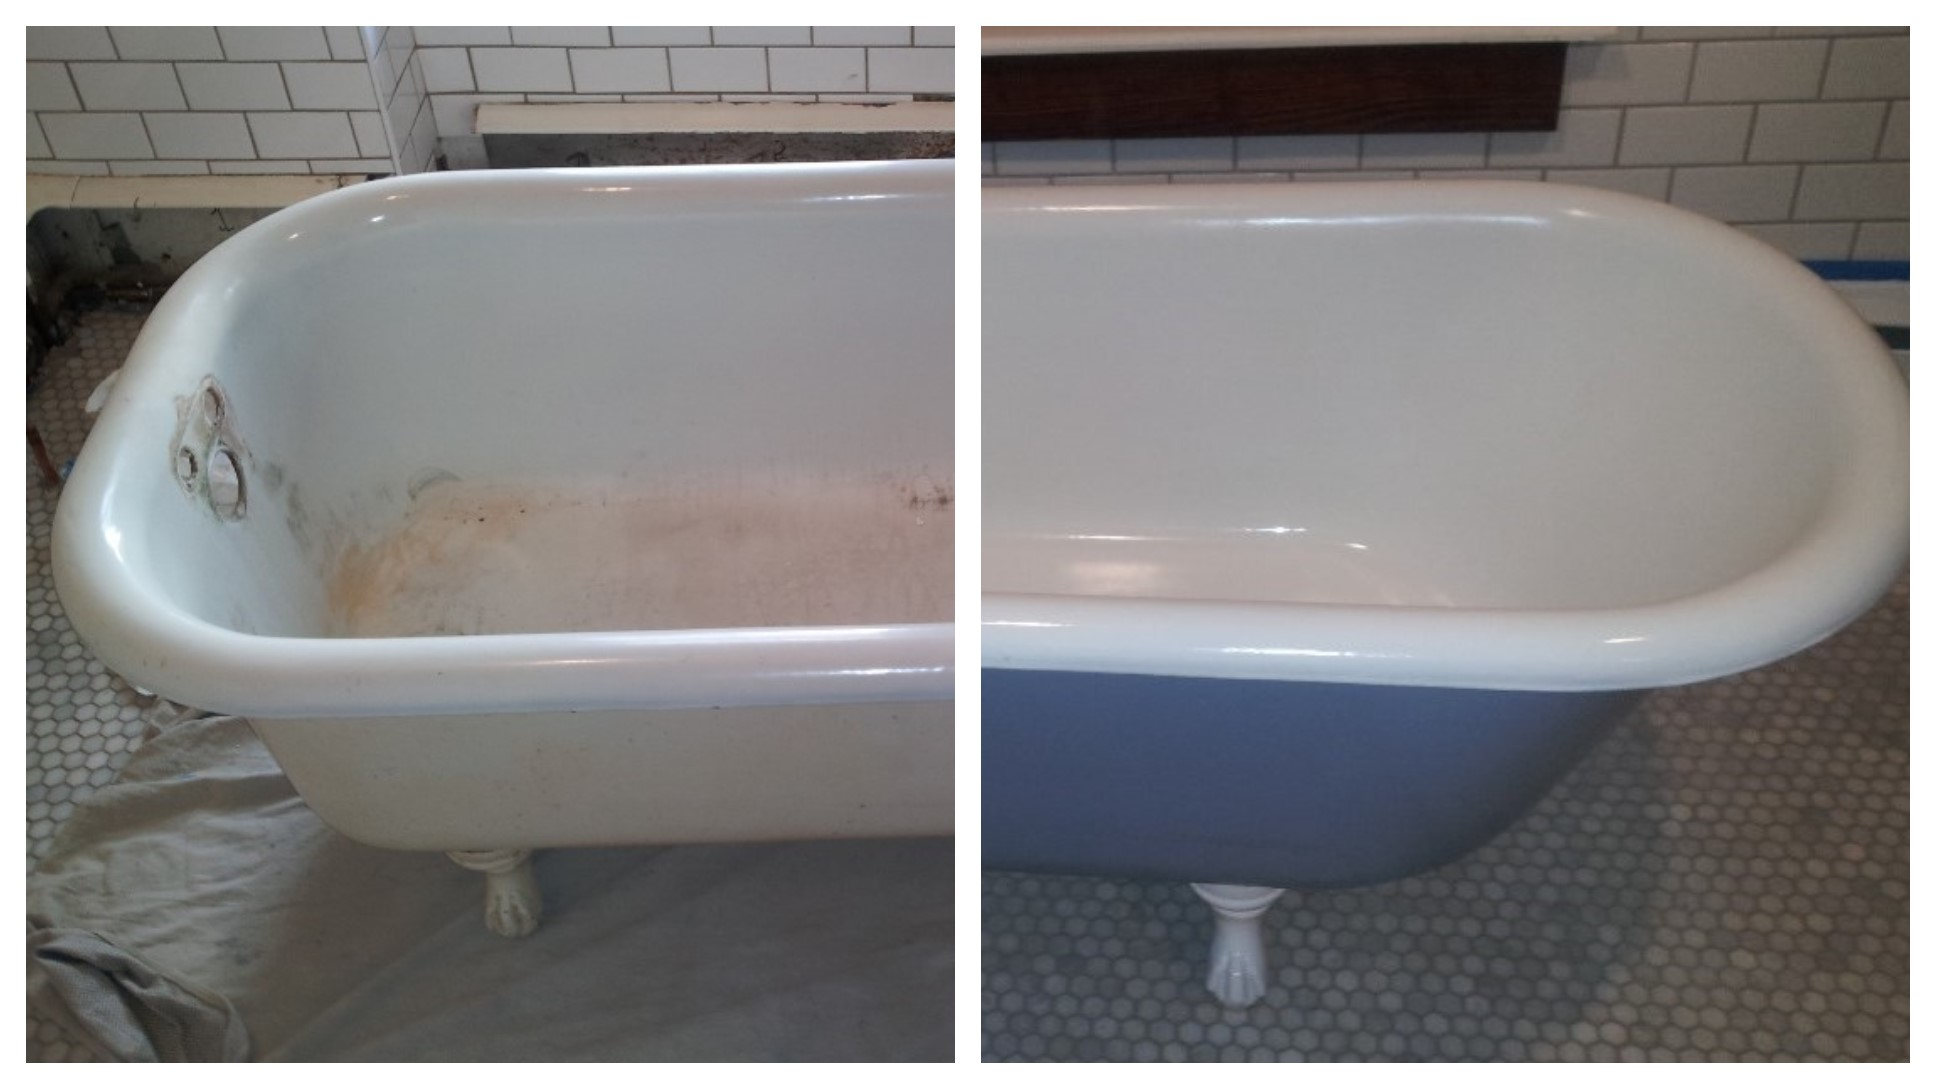 Armorkote bathtub countertop reglazing refinishing in if youre looking for high quality and personal service youve come to the right place at armorkote well give you the attention and personal service dailygadgetfo Image collections